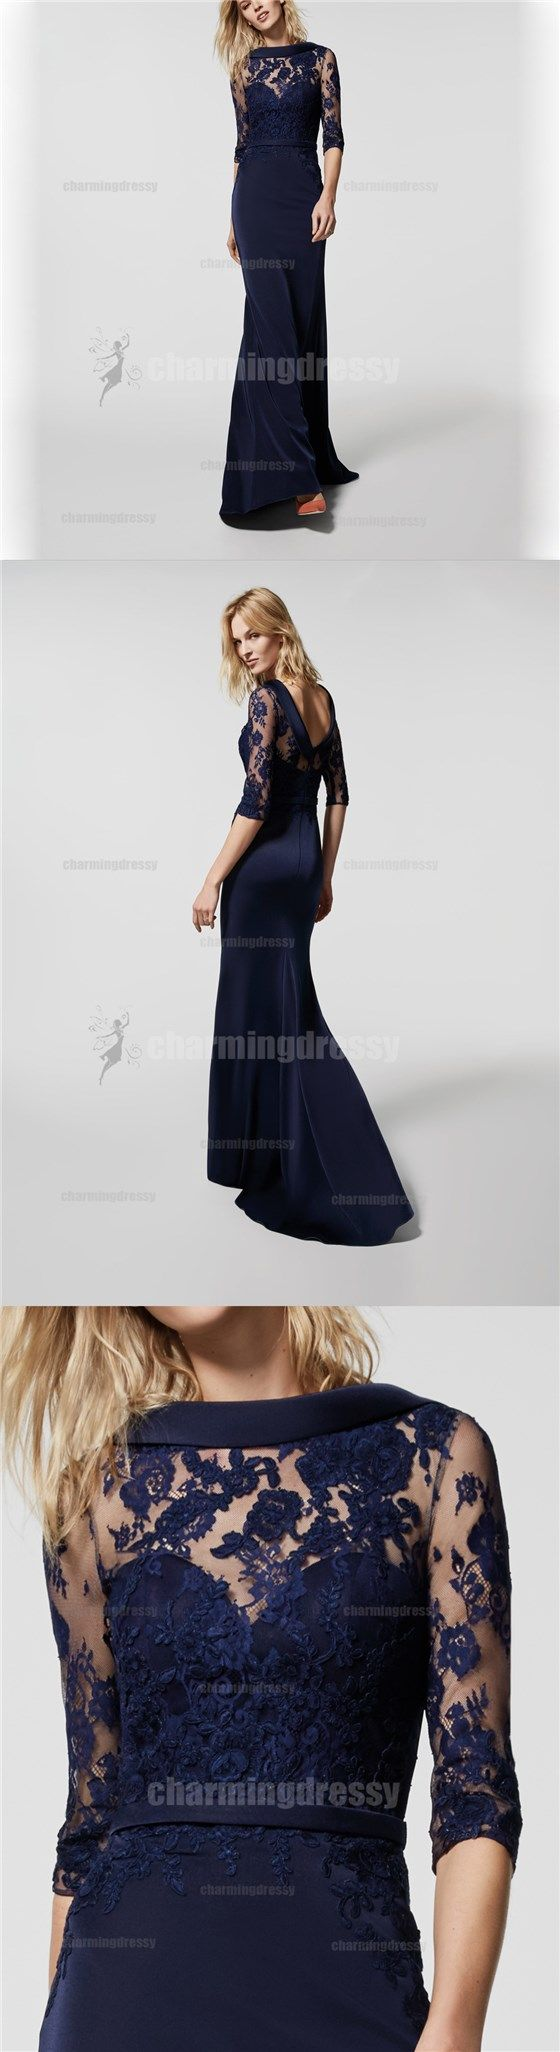 Navy blue long sleeves v back lace popular bridesmaid dresses